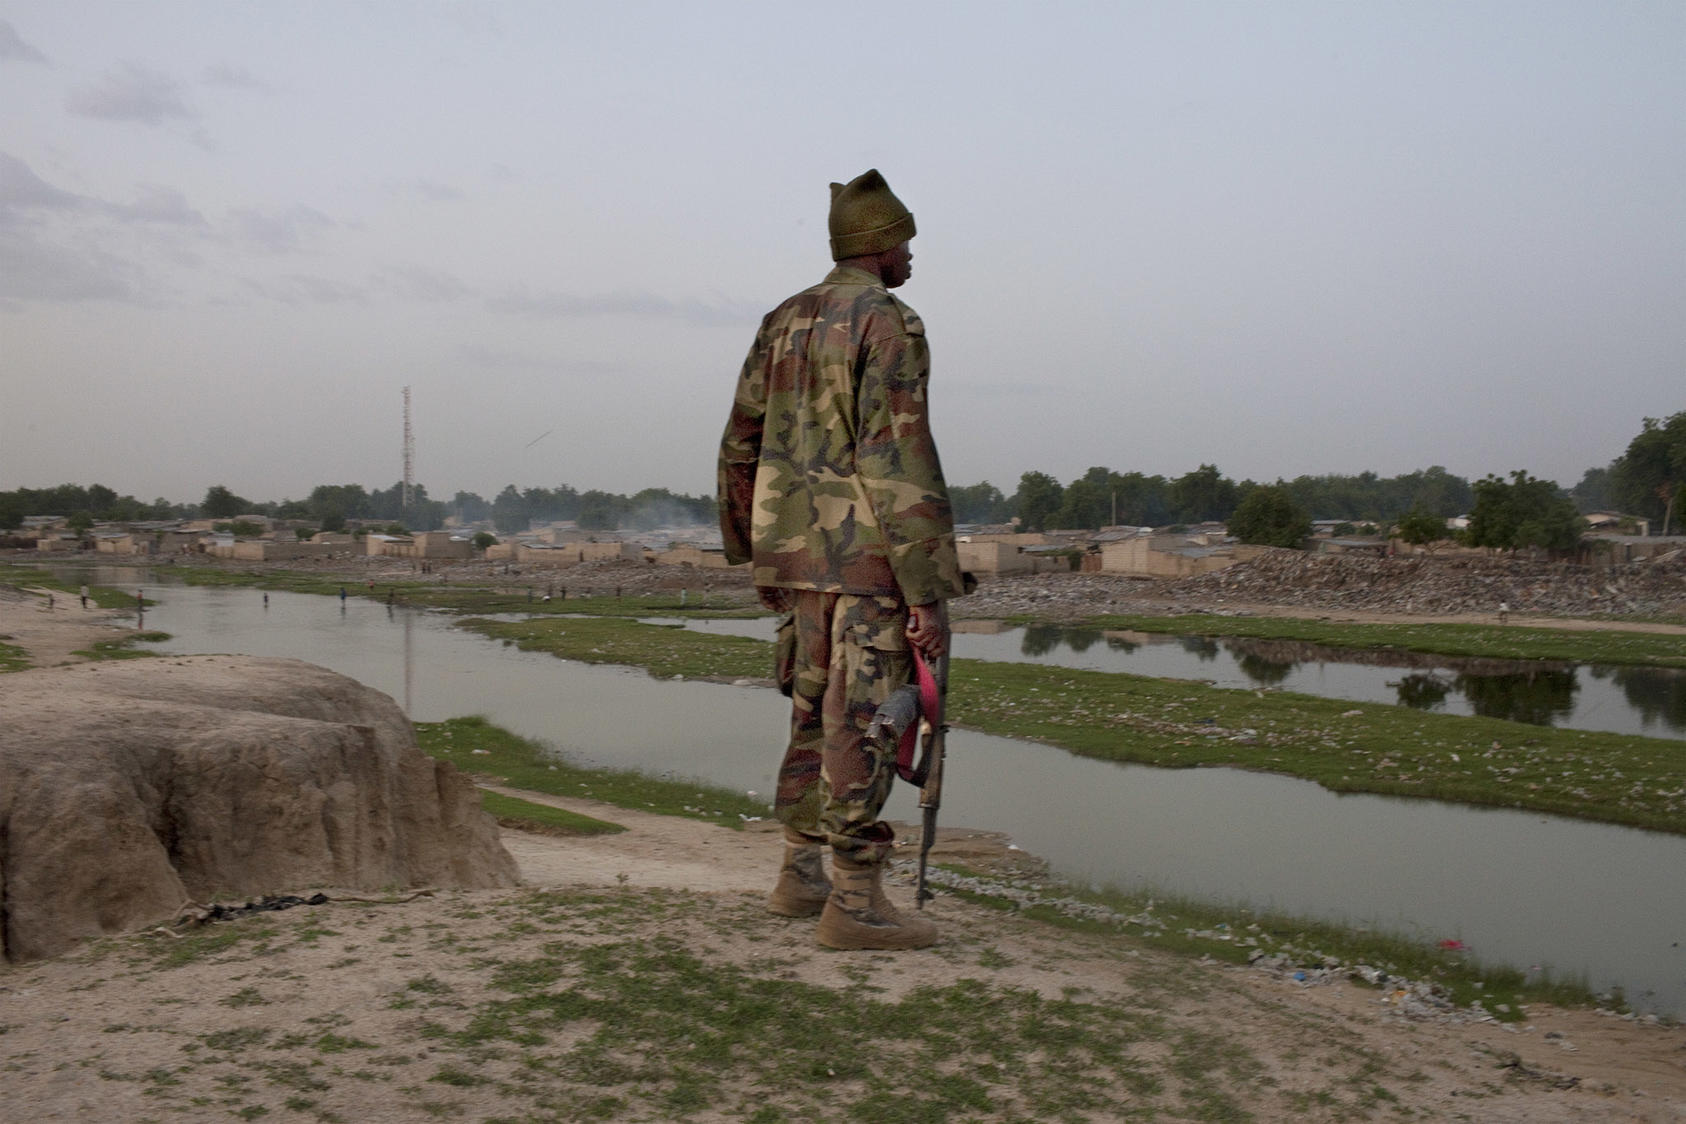 A soldier stands guard in northeastern Nigeria early in the Boko Haram insurgency. Nigeria's responses to violent conflict have focused on military and police operations, with less focus on prevention efforts. (Samuel James/The New York Times)